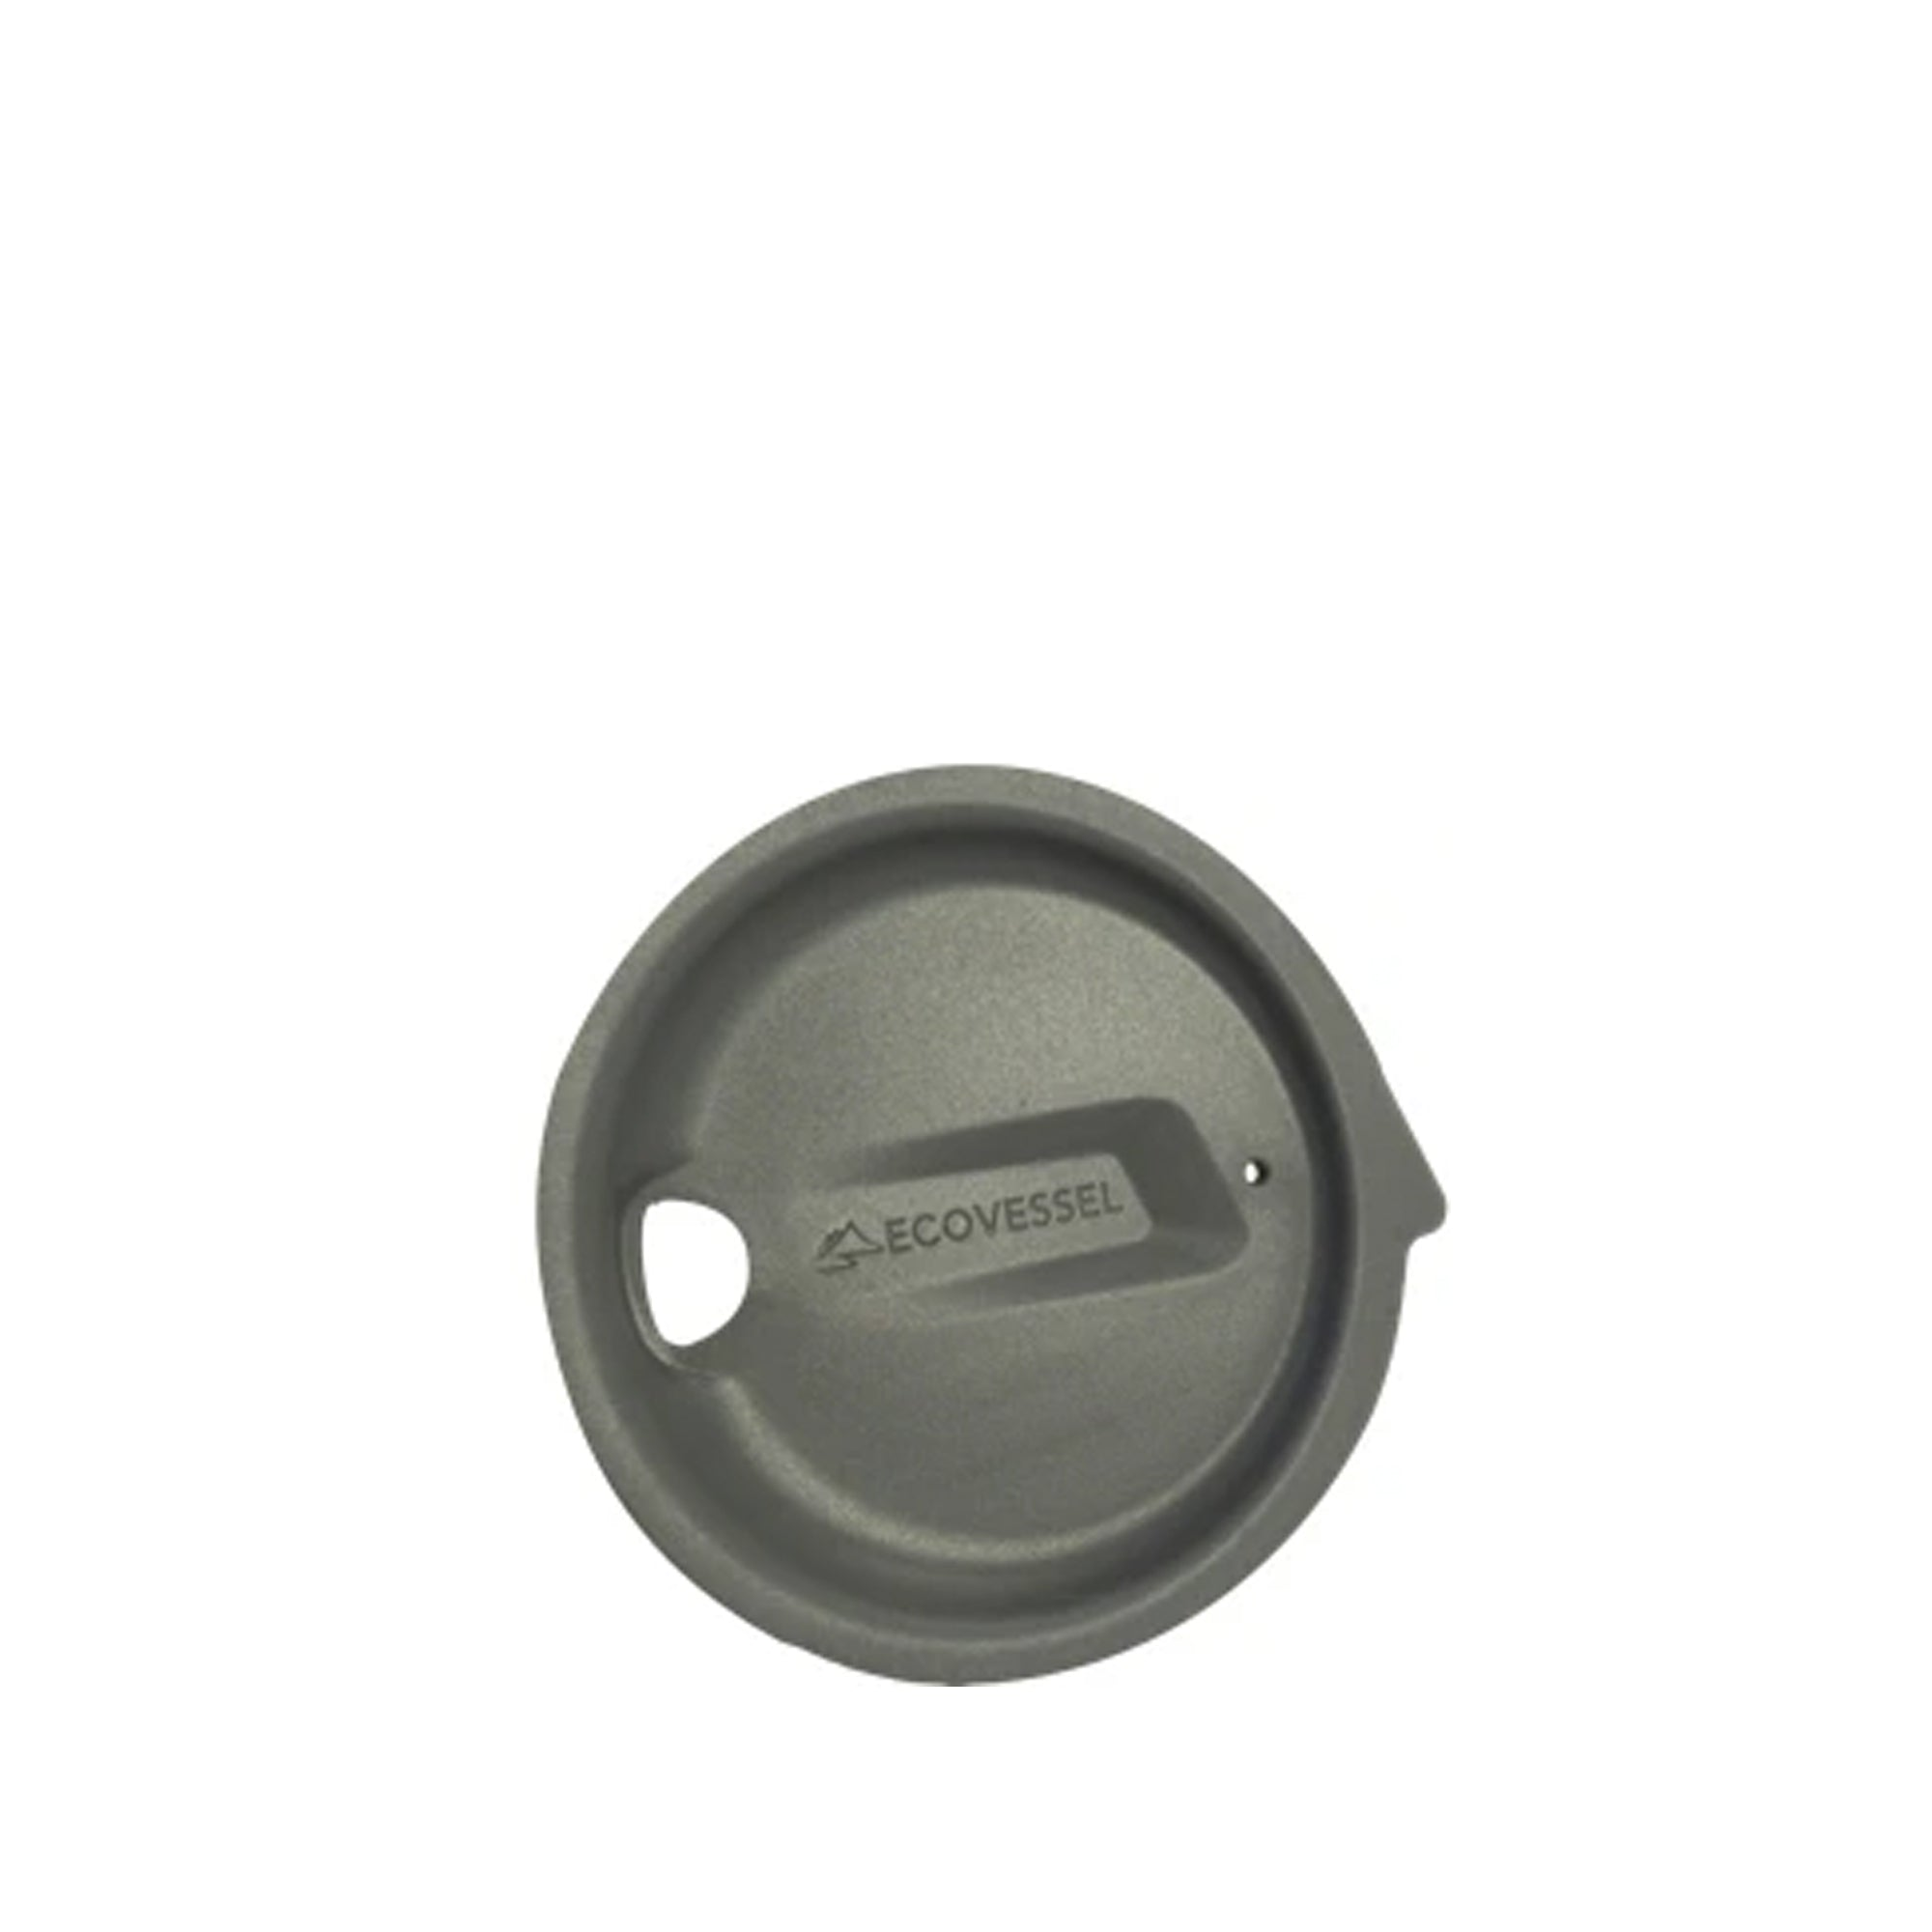 32oz DOUBLE BARREL MUG LID